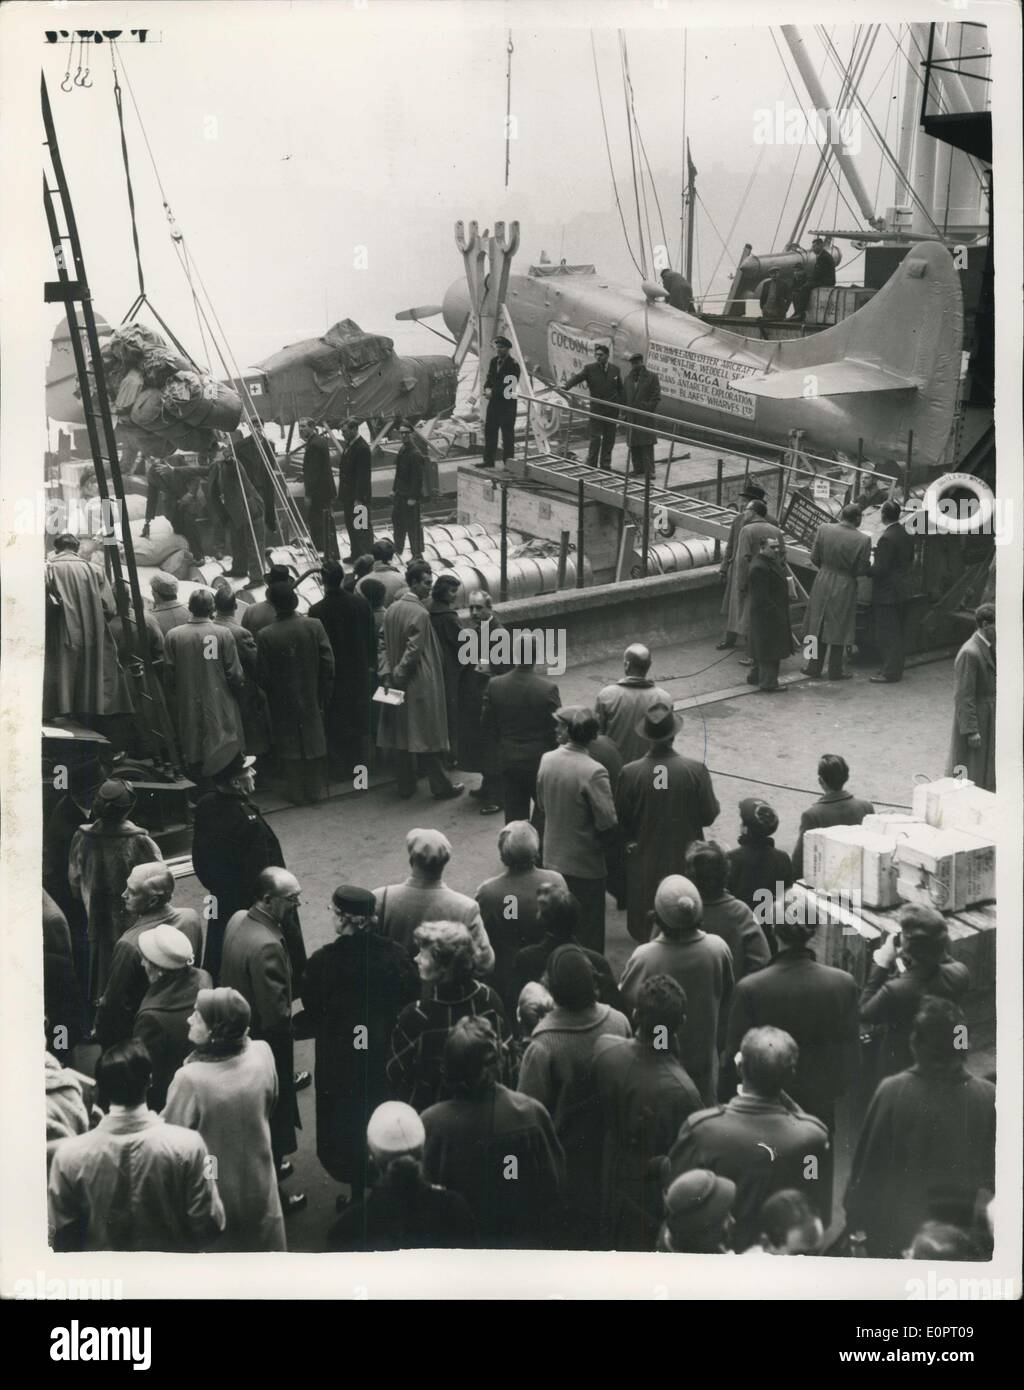 Nov. 15, 1956 - The Magga Dan Prepares to leave London for the Antarctic: The Meggs Dan, the ship that has been chartered by the London-based Trans-Antarctic Expedition to carry Dr. V.E. Fuchs, the leader, and the main party of explorers to the ''ice continent'' for their trek to the South Pole and beyond, was taking last minute supplies aboard at Butler's Wharf, Tower Bridge, before she leaves this morning. Photo shows Last minute preparation around the Magga Dan at Butler's Wharf, Tower Bridge before she left this morning. - Stock Image